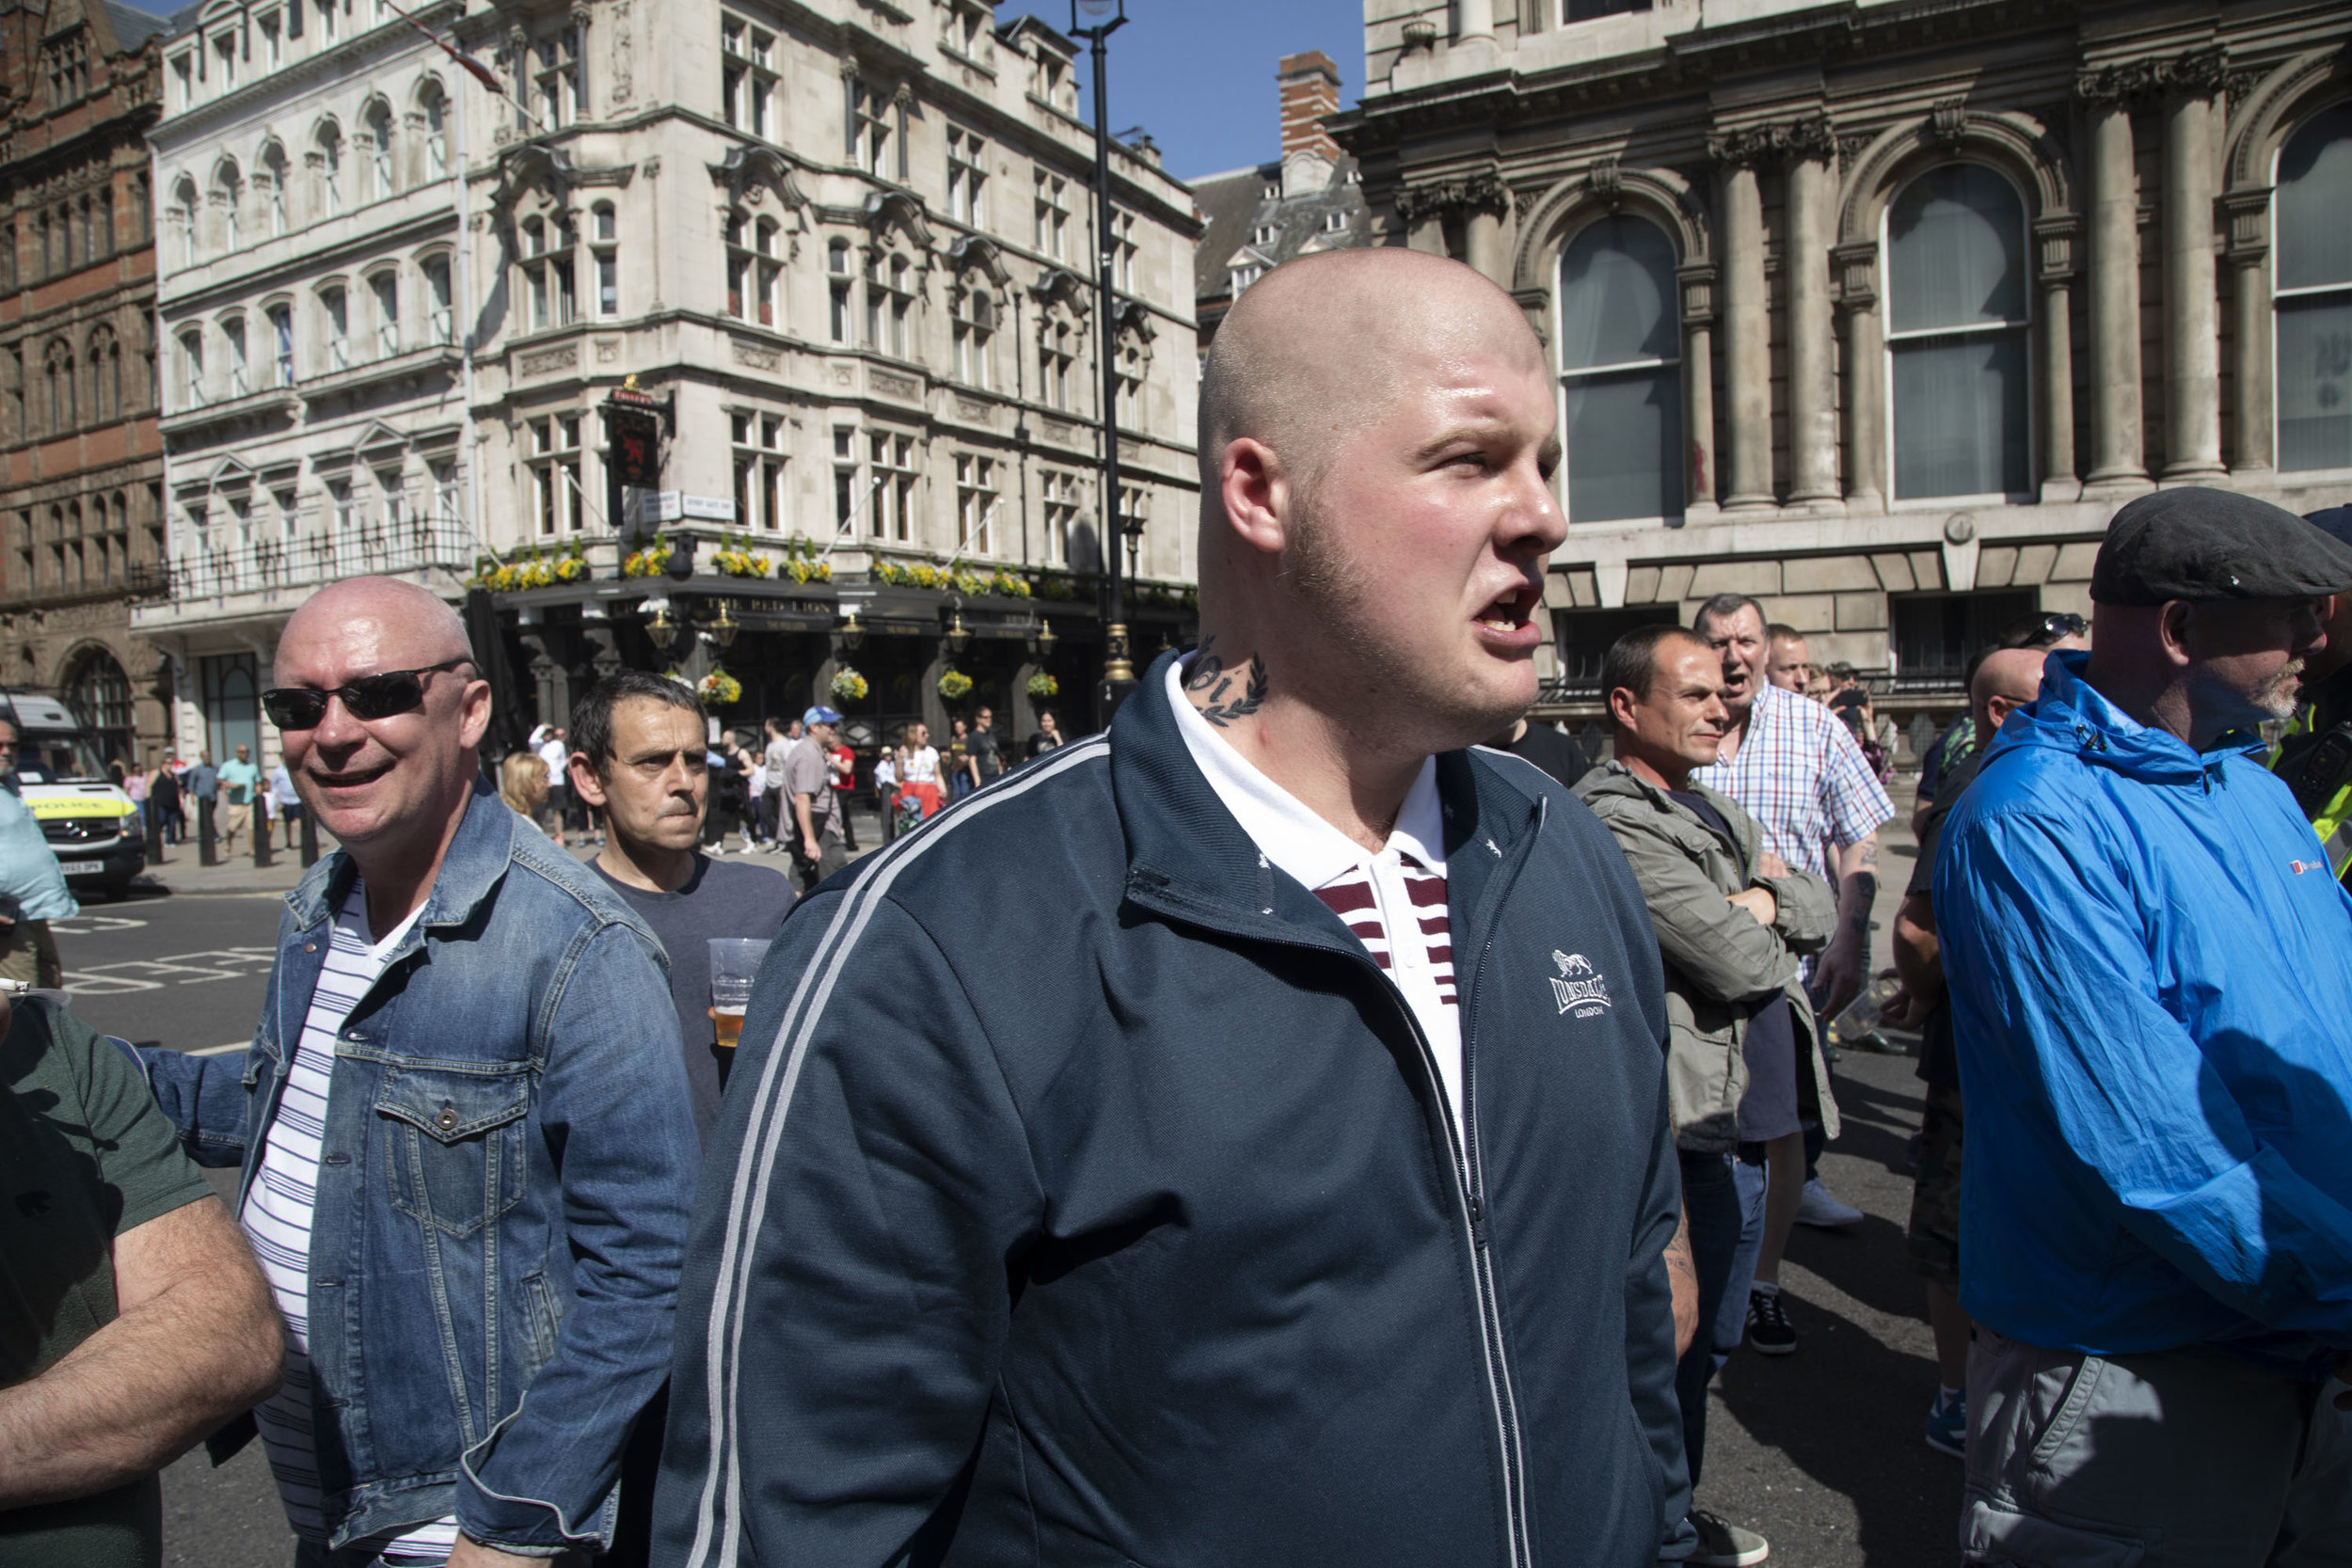 'Democratic' Football Lads Alliance 'day of freedom' for free speech in London.